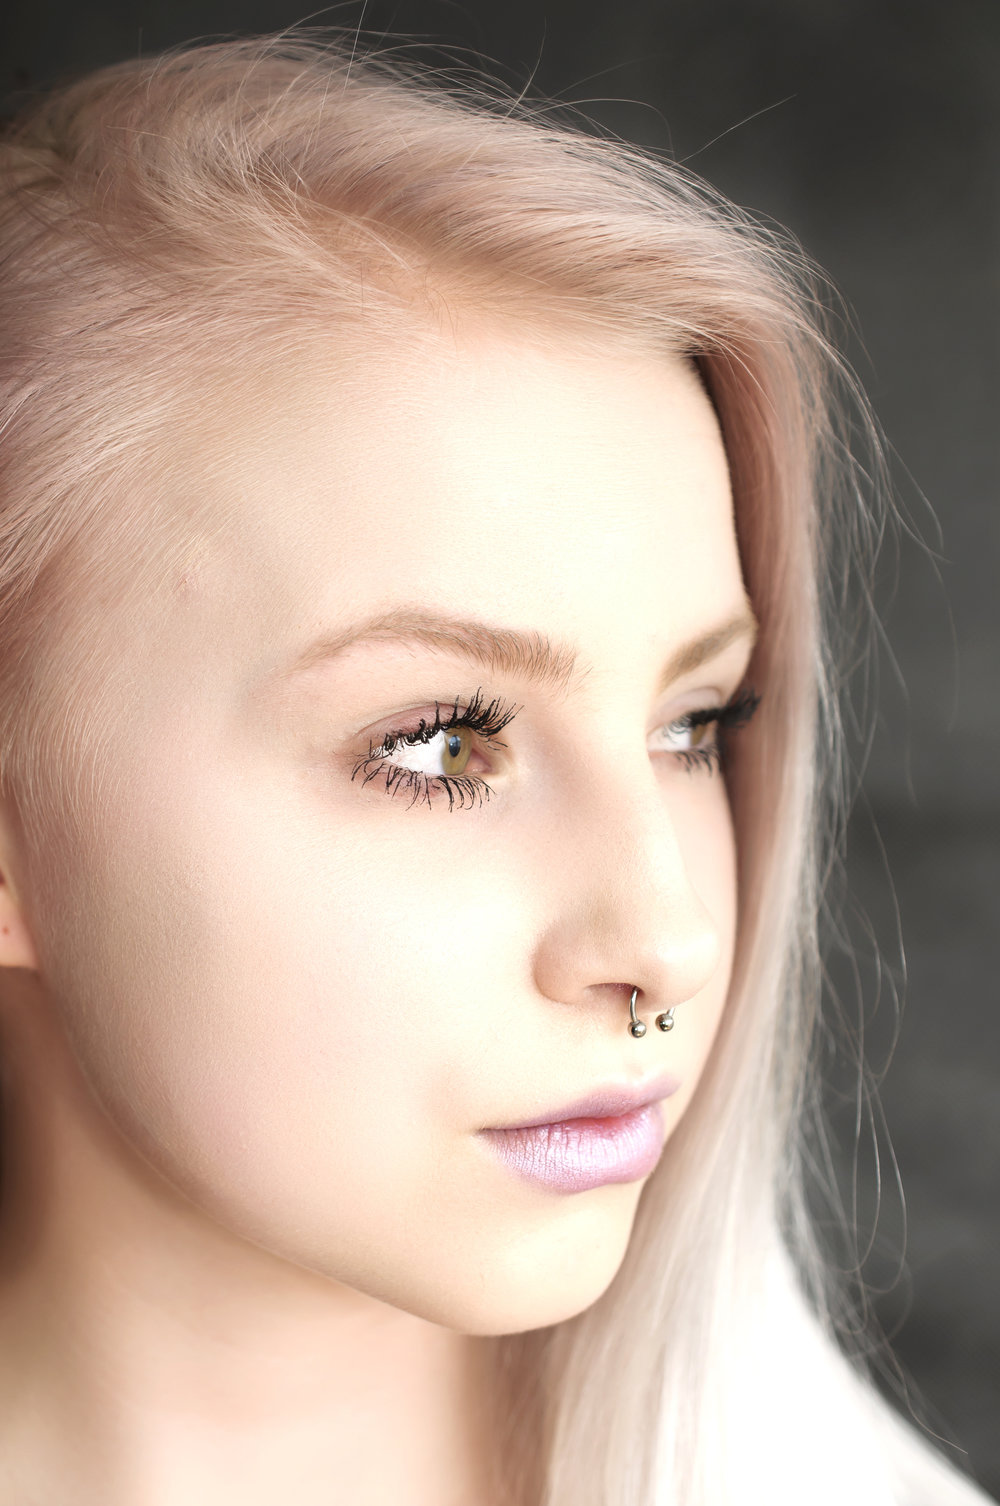 Body Piercing Studio Tallaght  - Call us on 01-4139000 to book an appointment